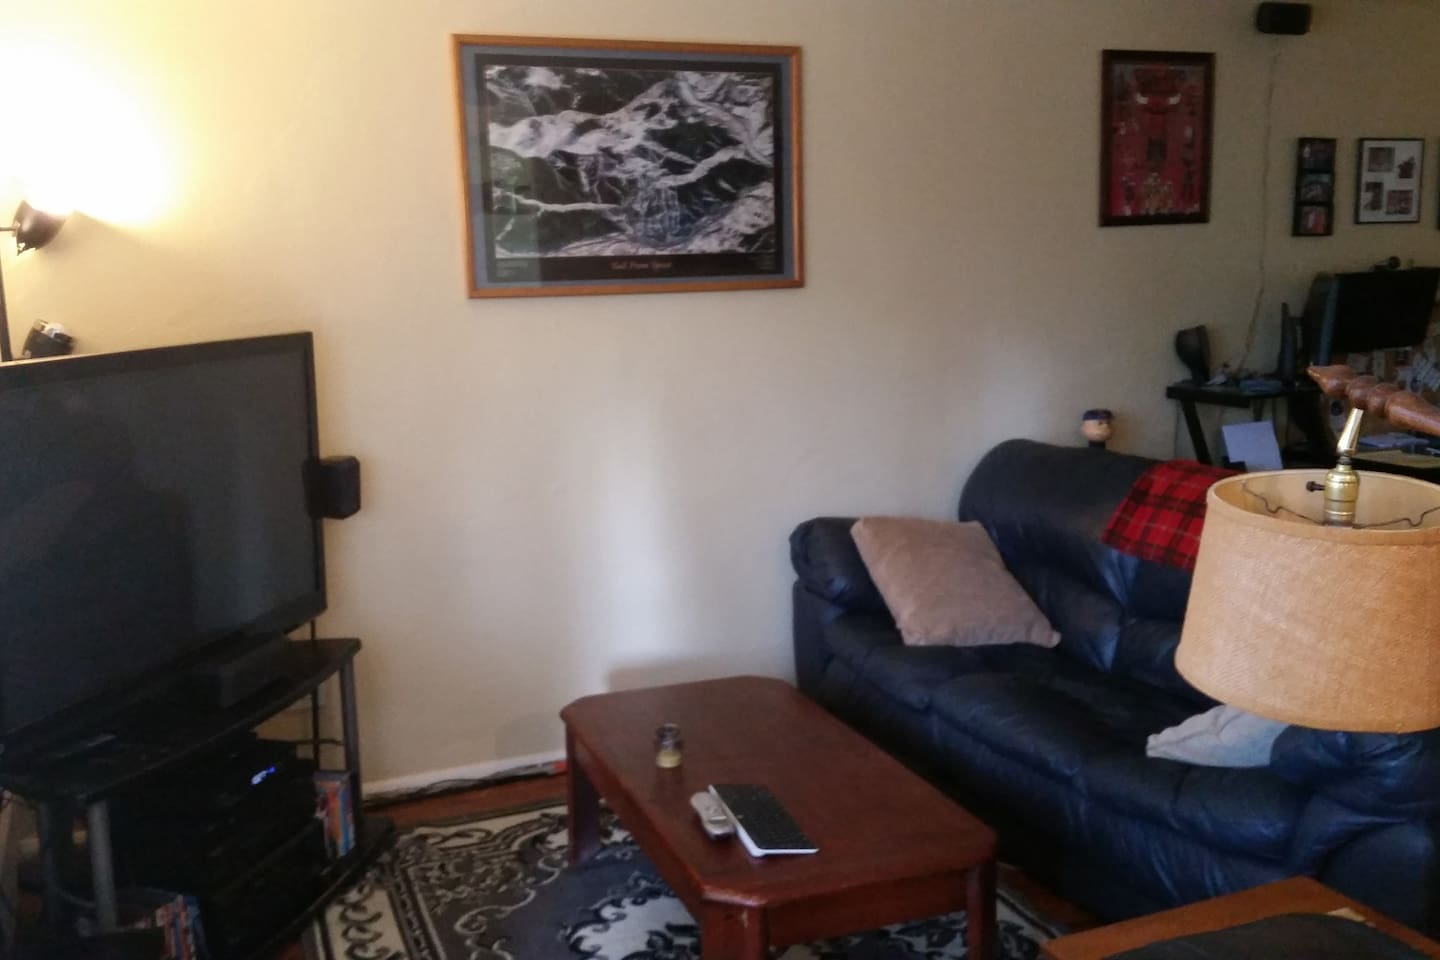 Living room with couch for a third person to sleep